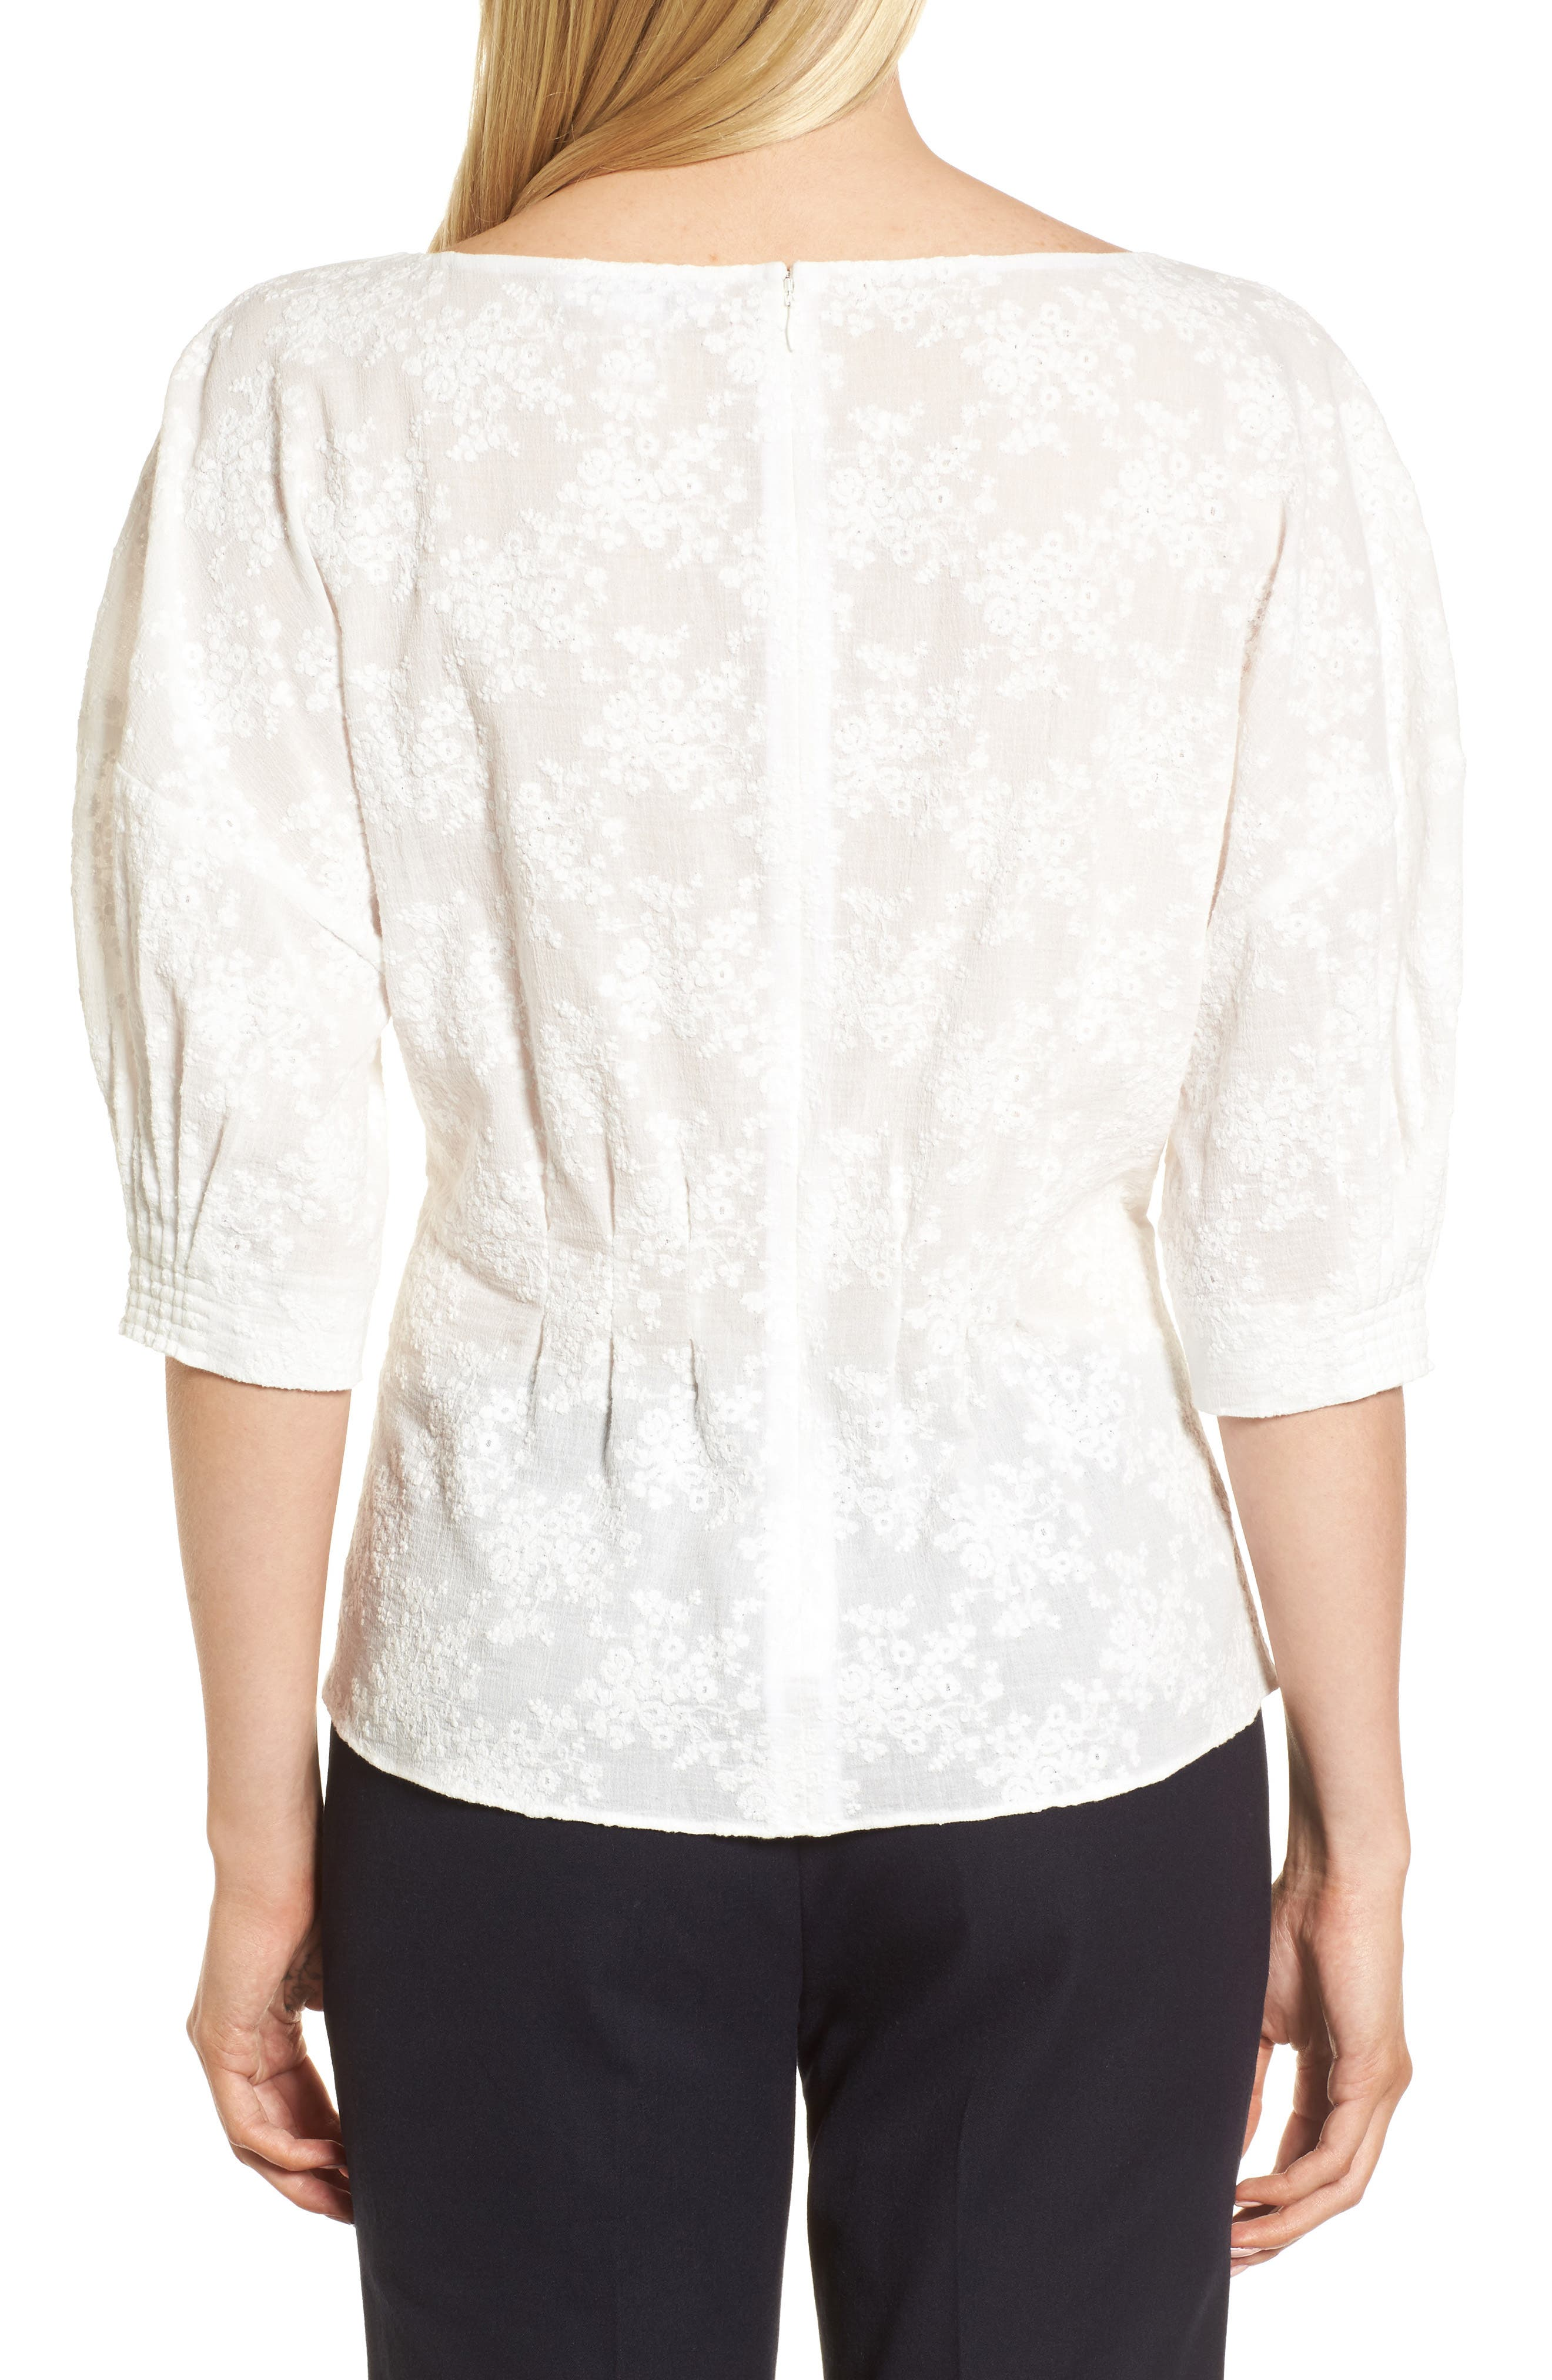 NORDSTROM SIGNATURE, Embroidered Tucked Top, Alternate thumbnail 2, color, 100